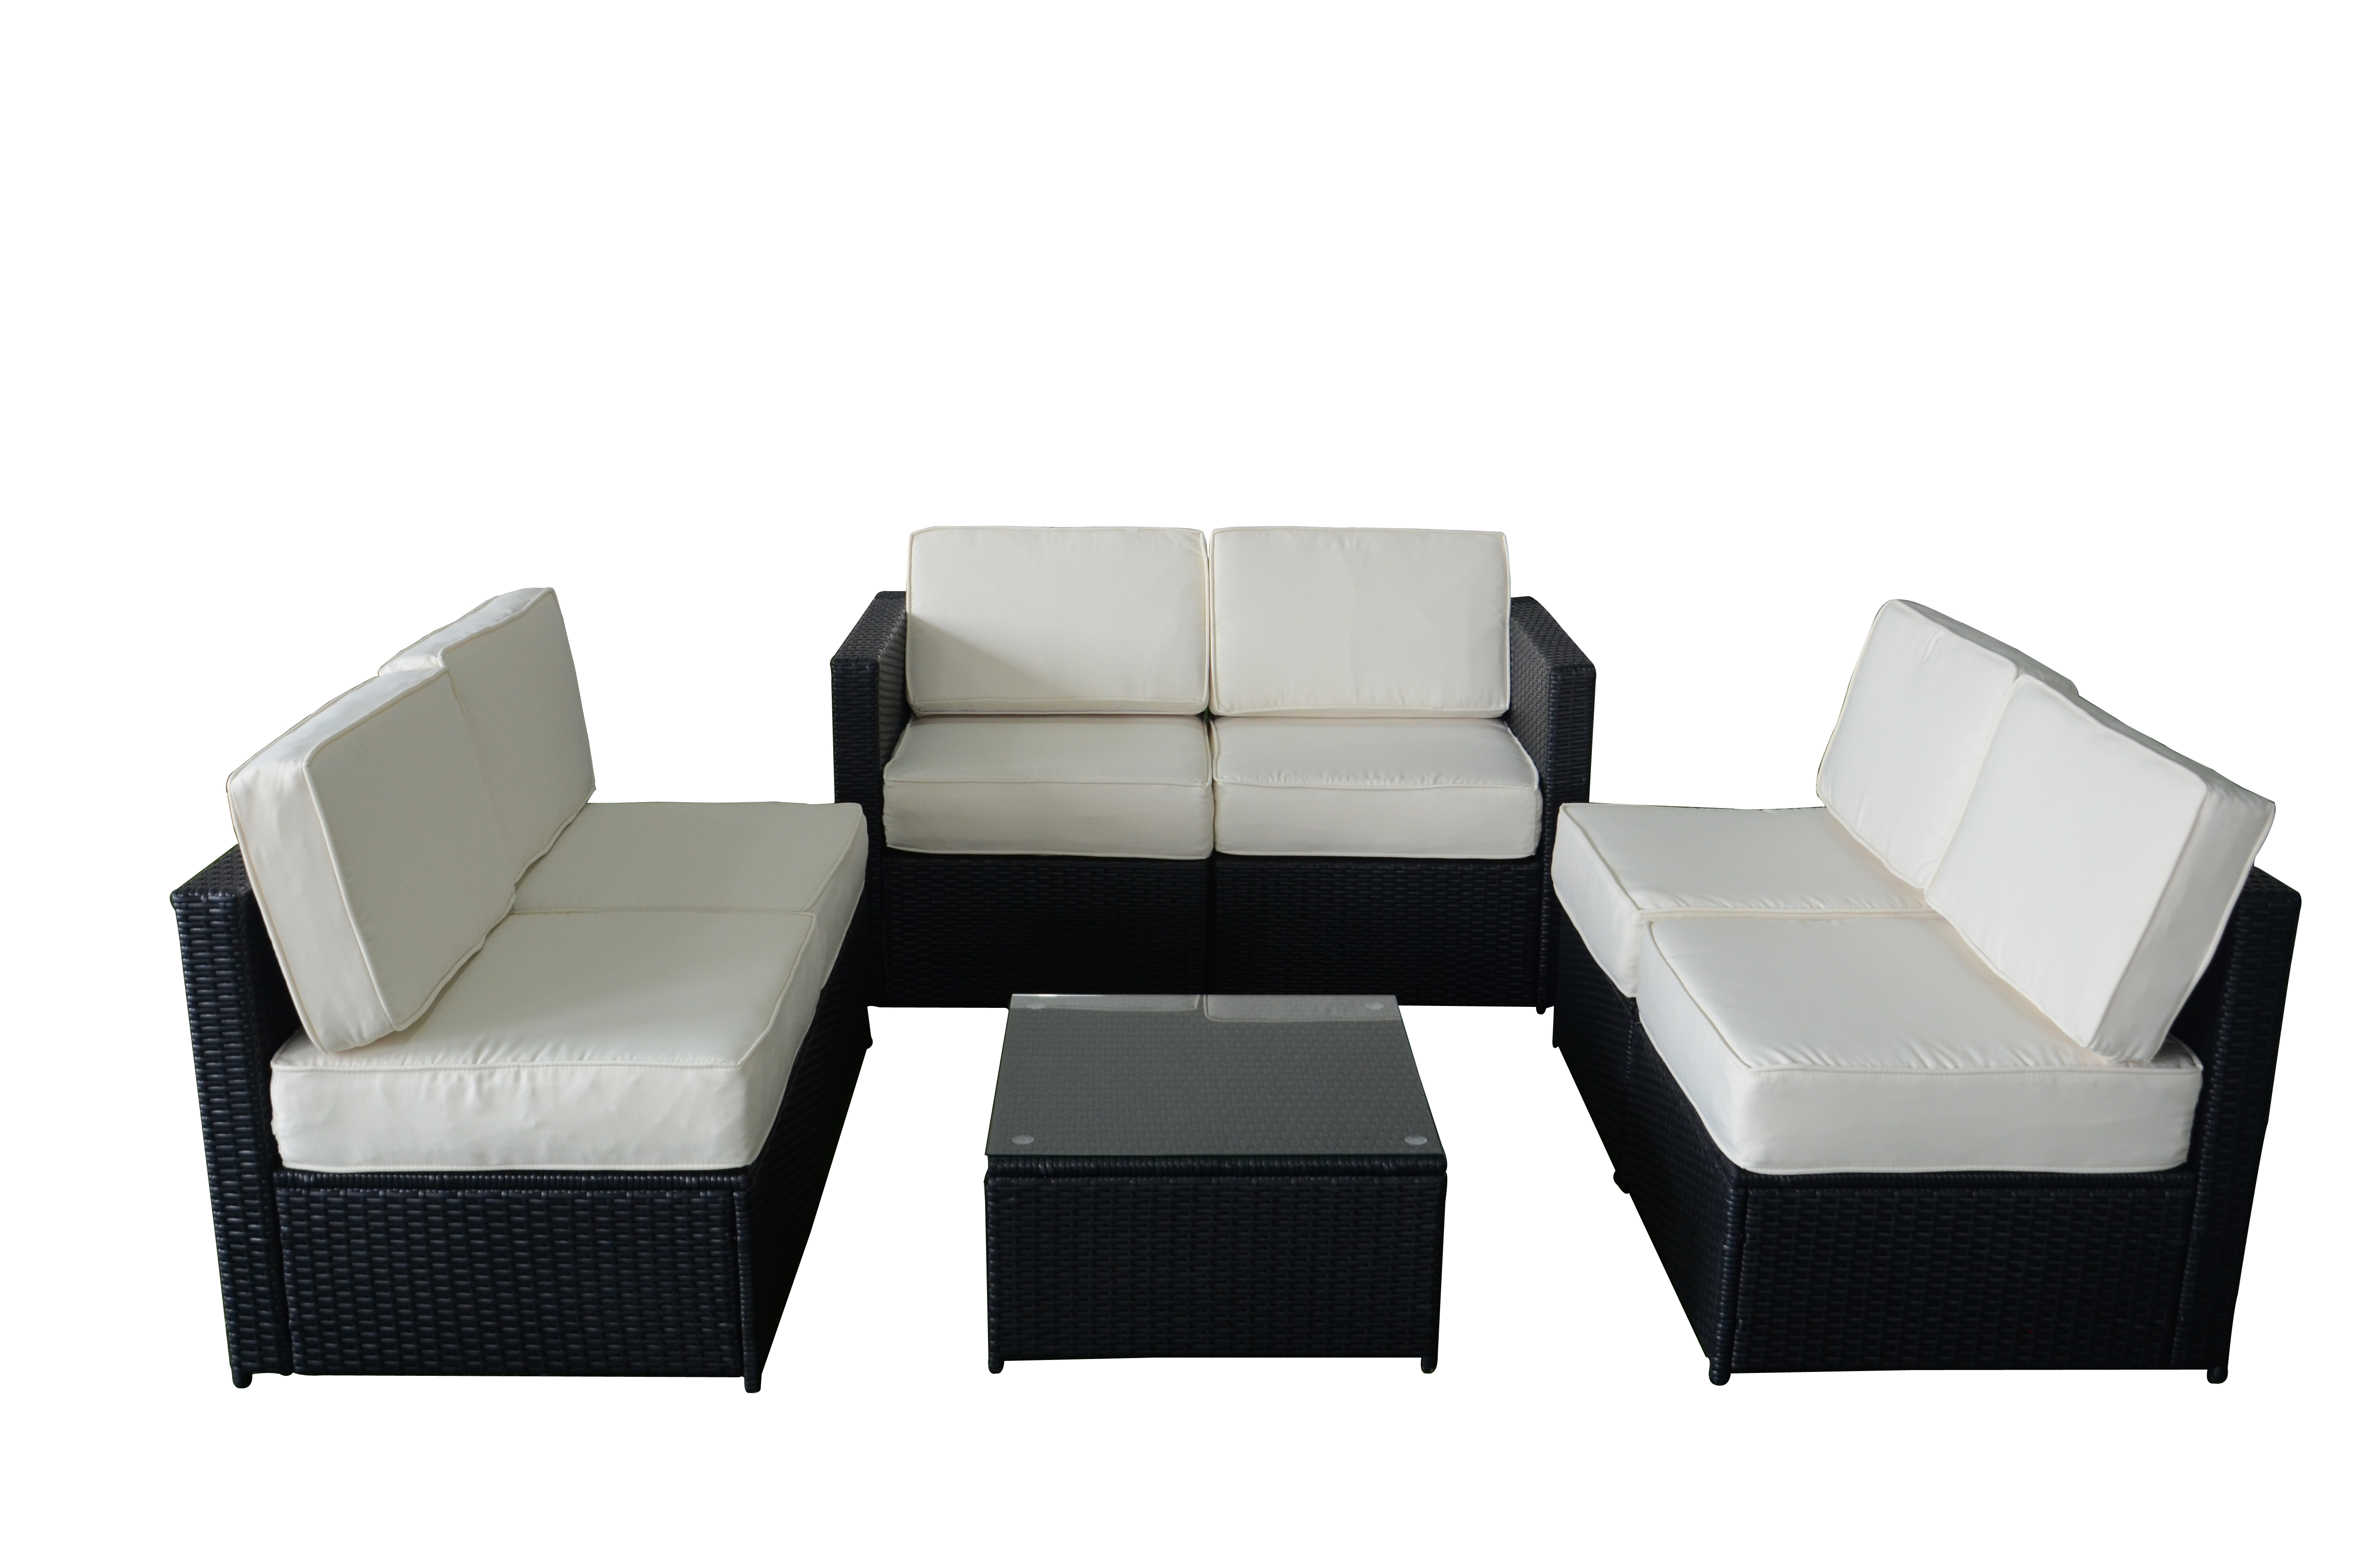 black outdoor sofa cost of leather in bangalore mcombo 7pcs wicker patio sectional